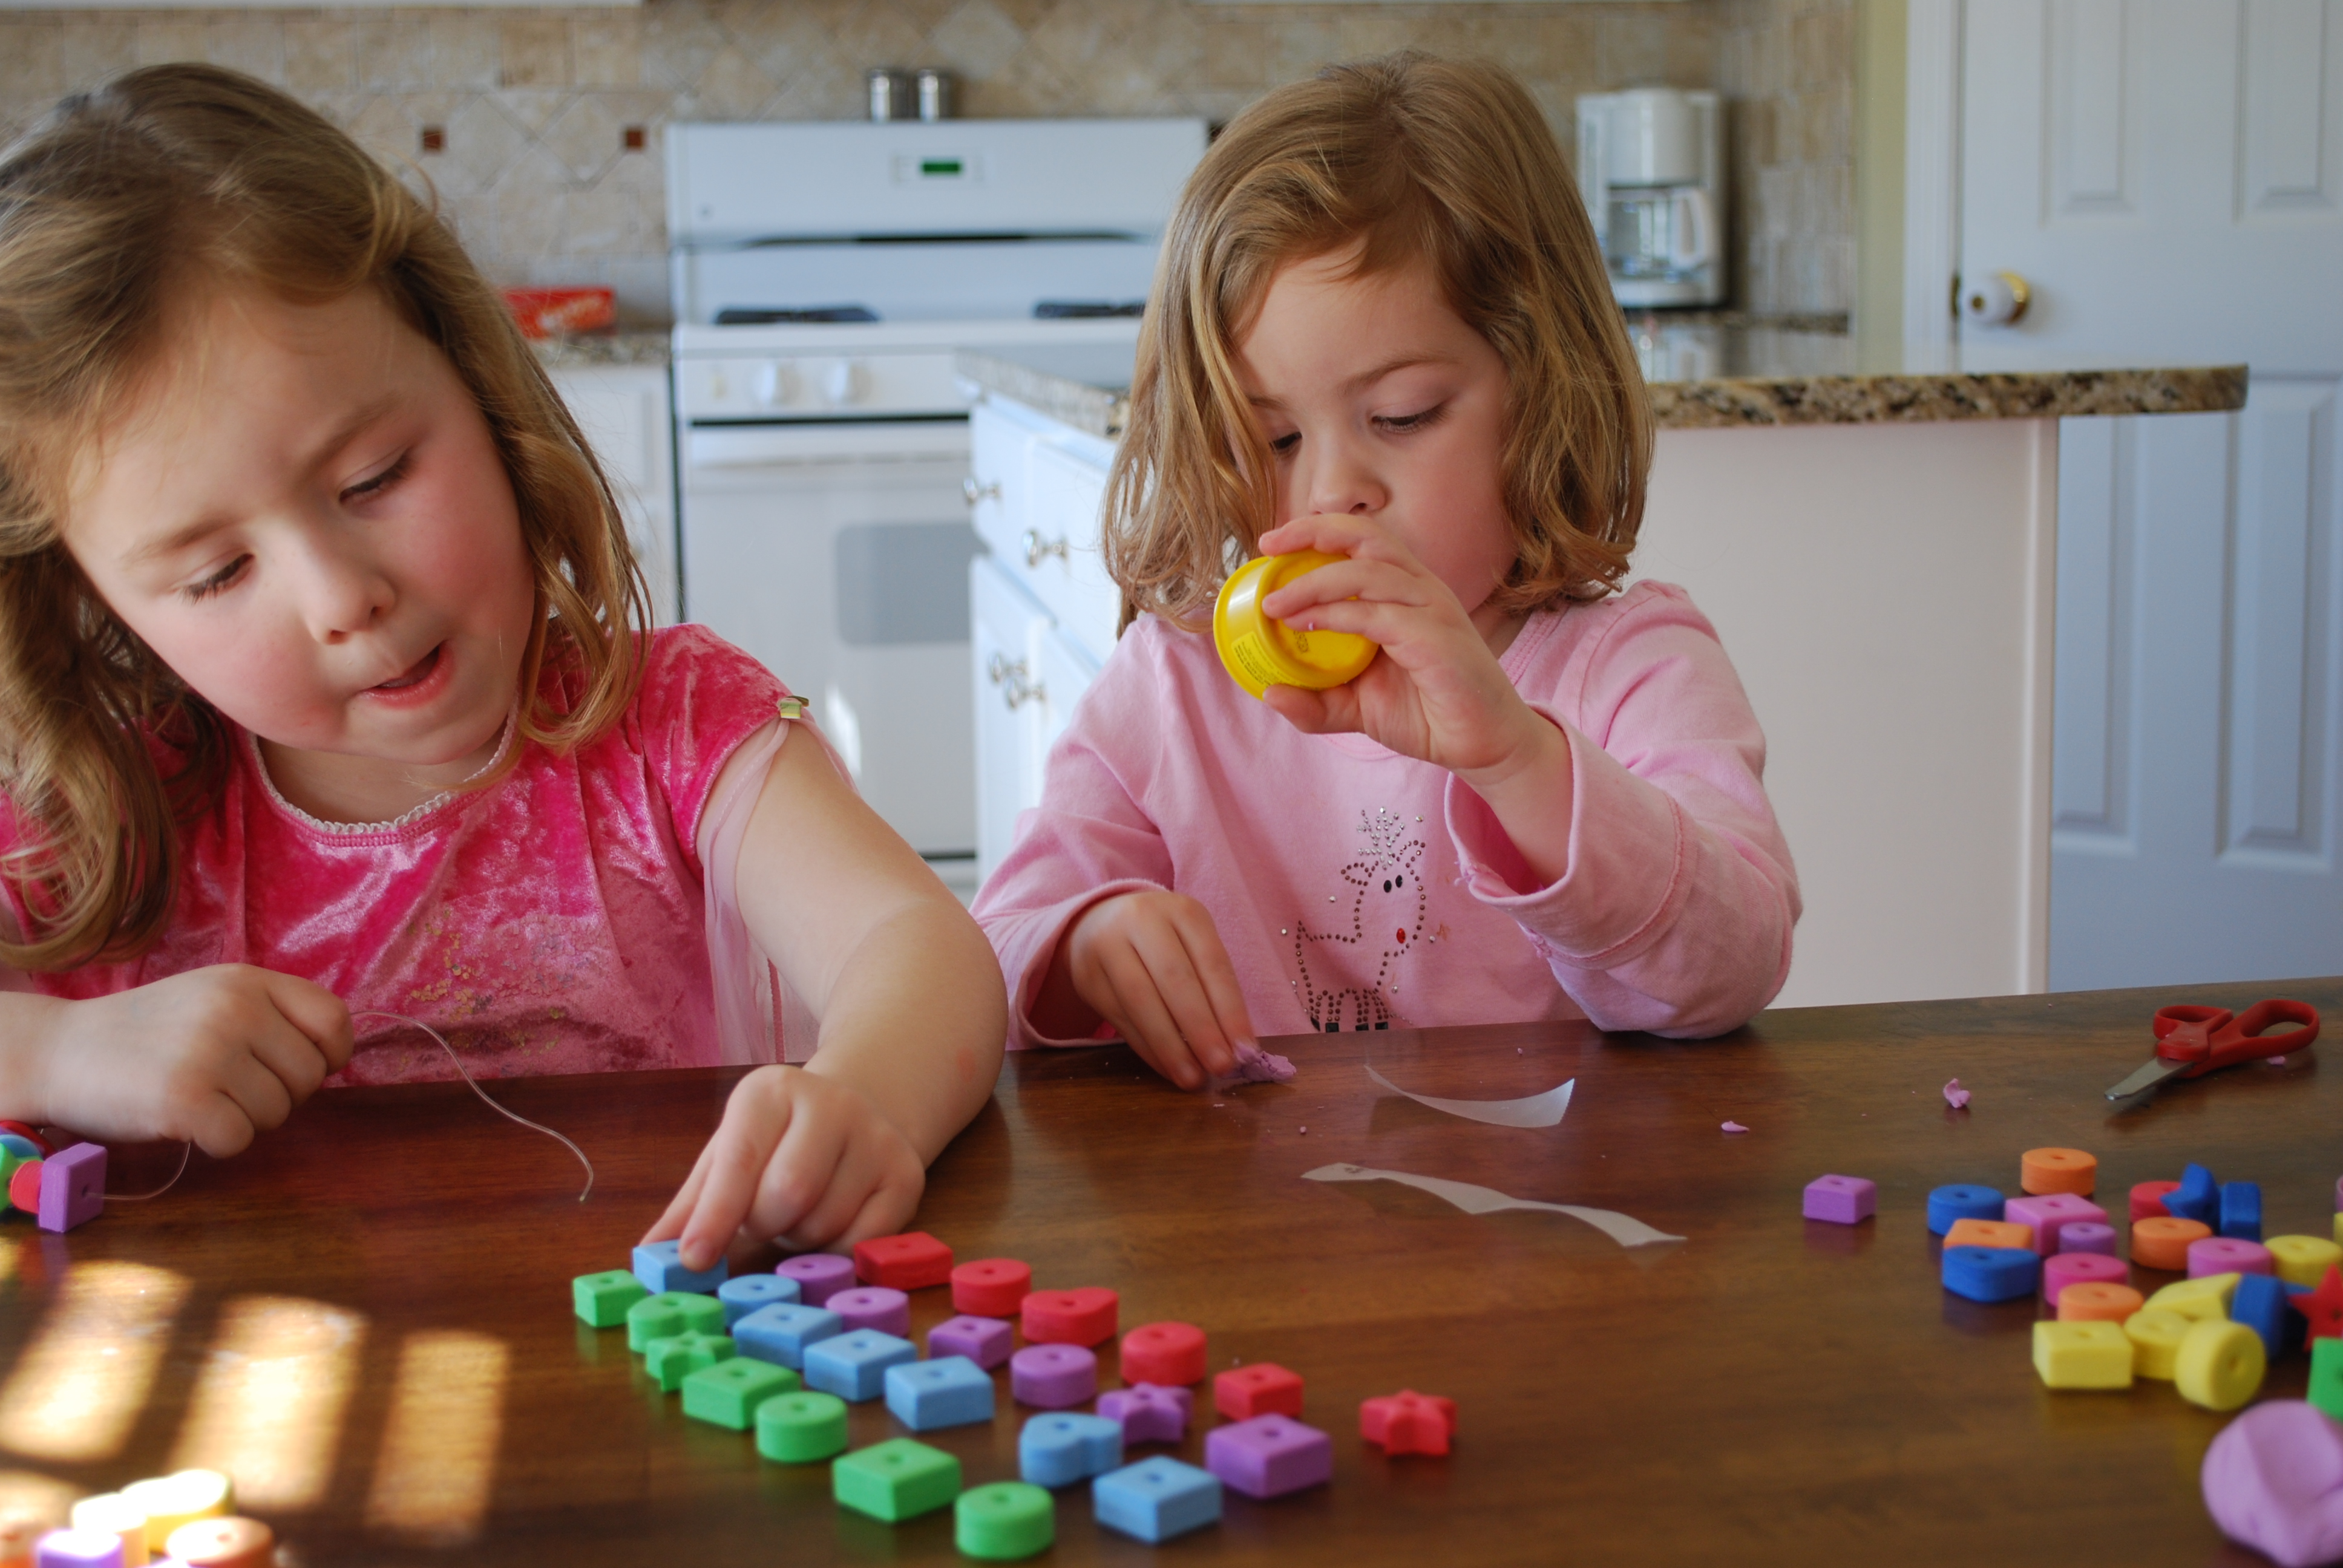 learning patterns, shapes and using fine motor skills